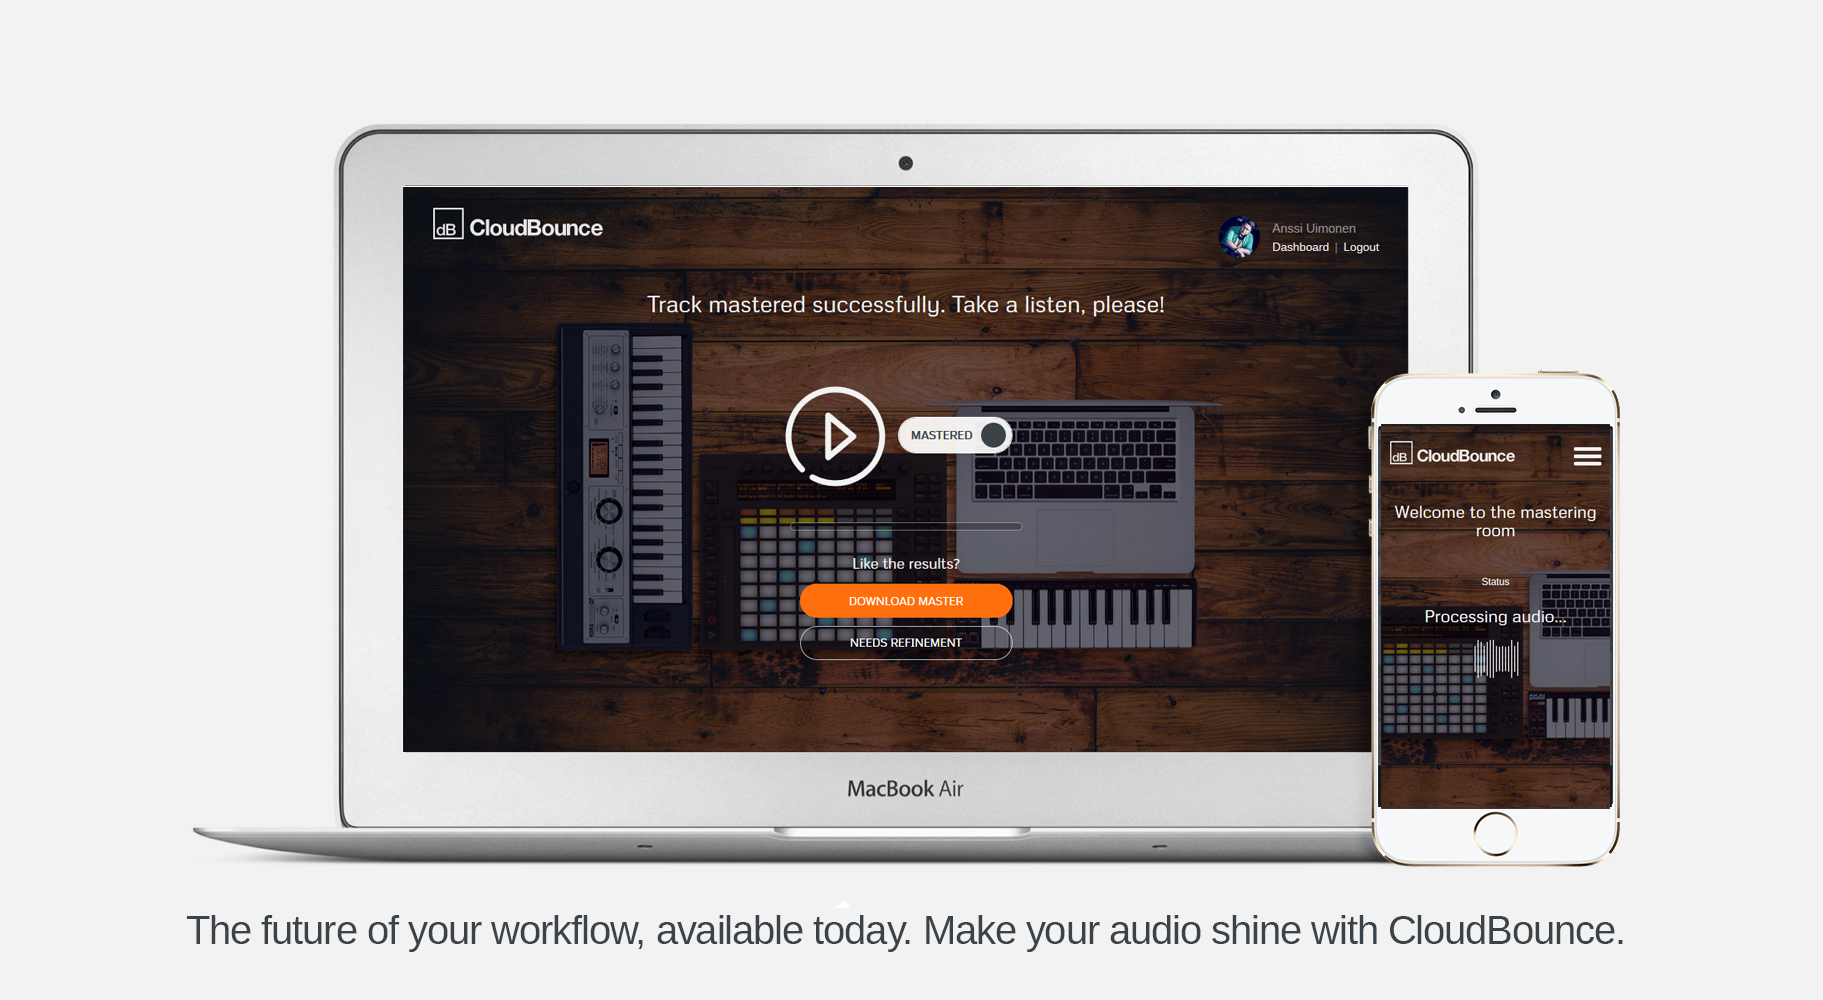 CloudBounce brings mastering to home computers.